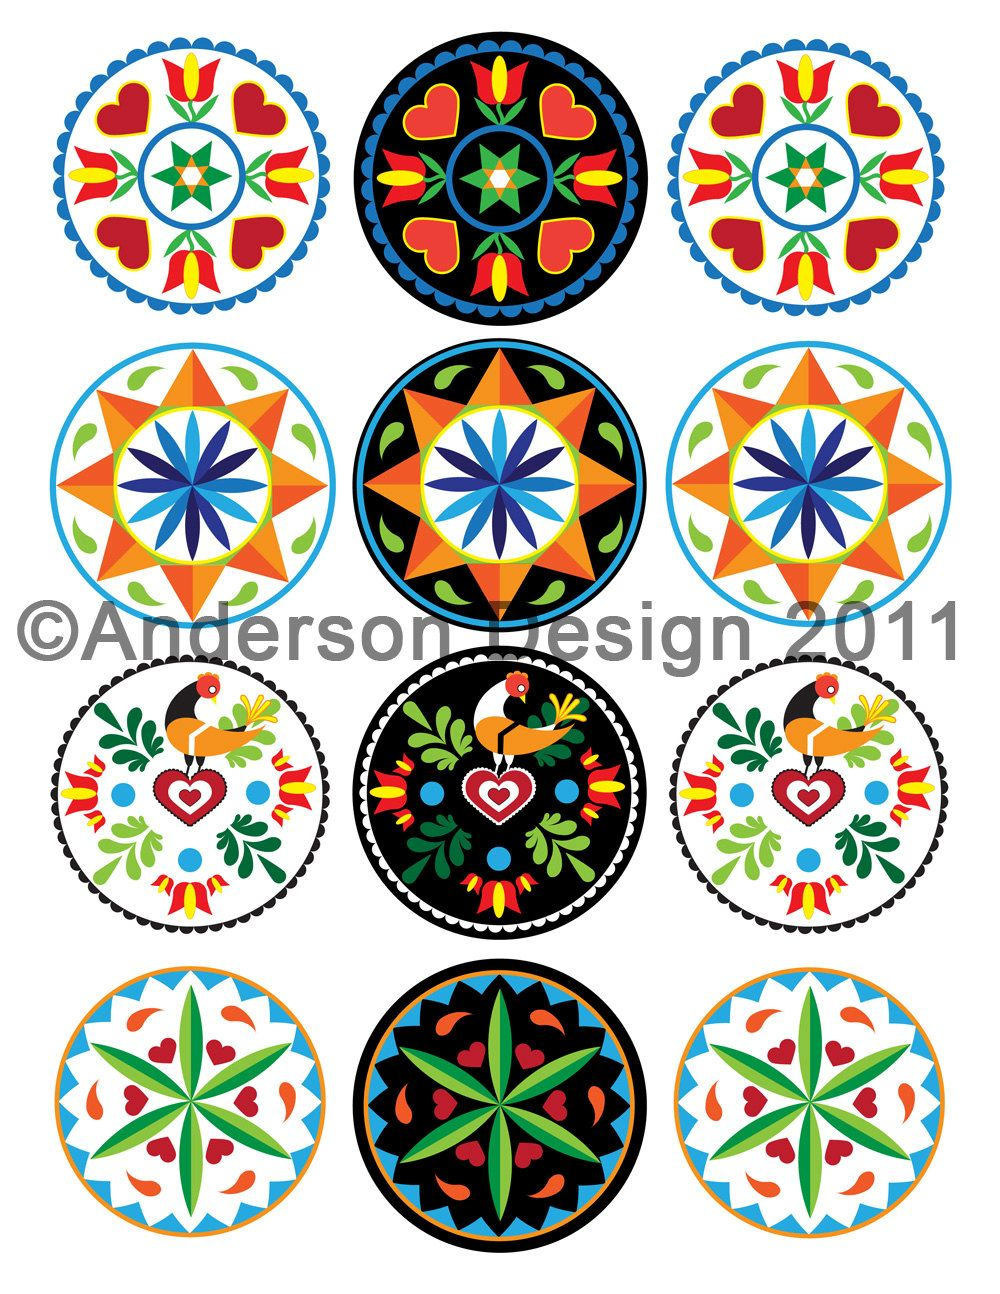 Pennsylvania dutch inspired 25 inch round hex sign printable etsy biocorpaavc Images